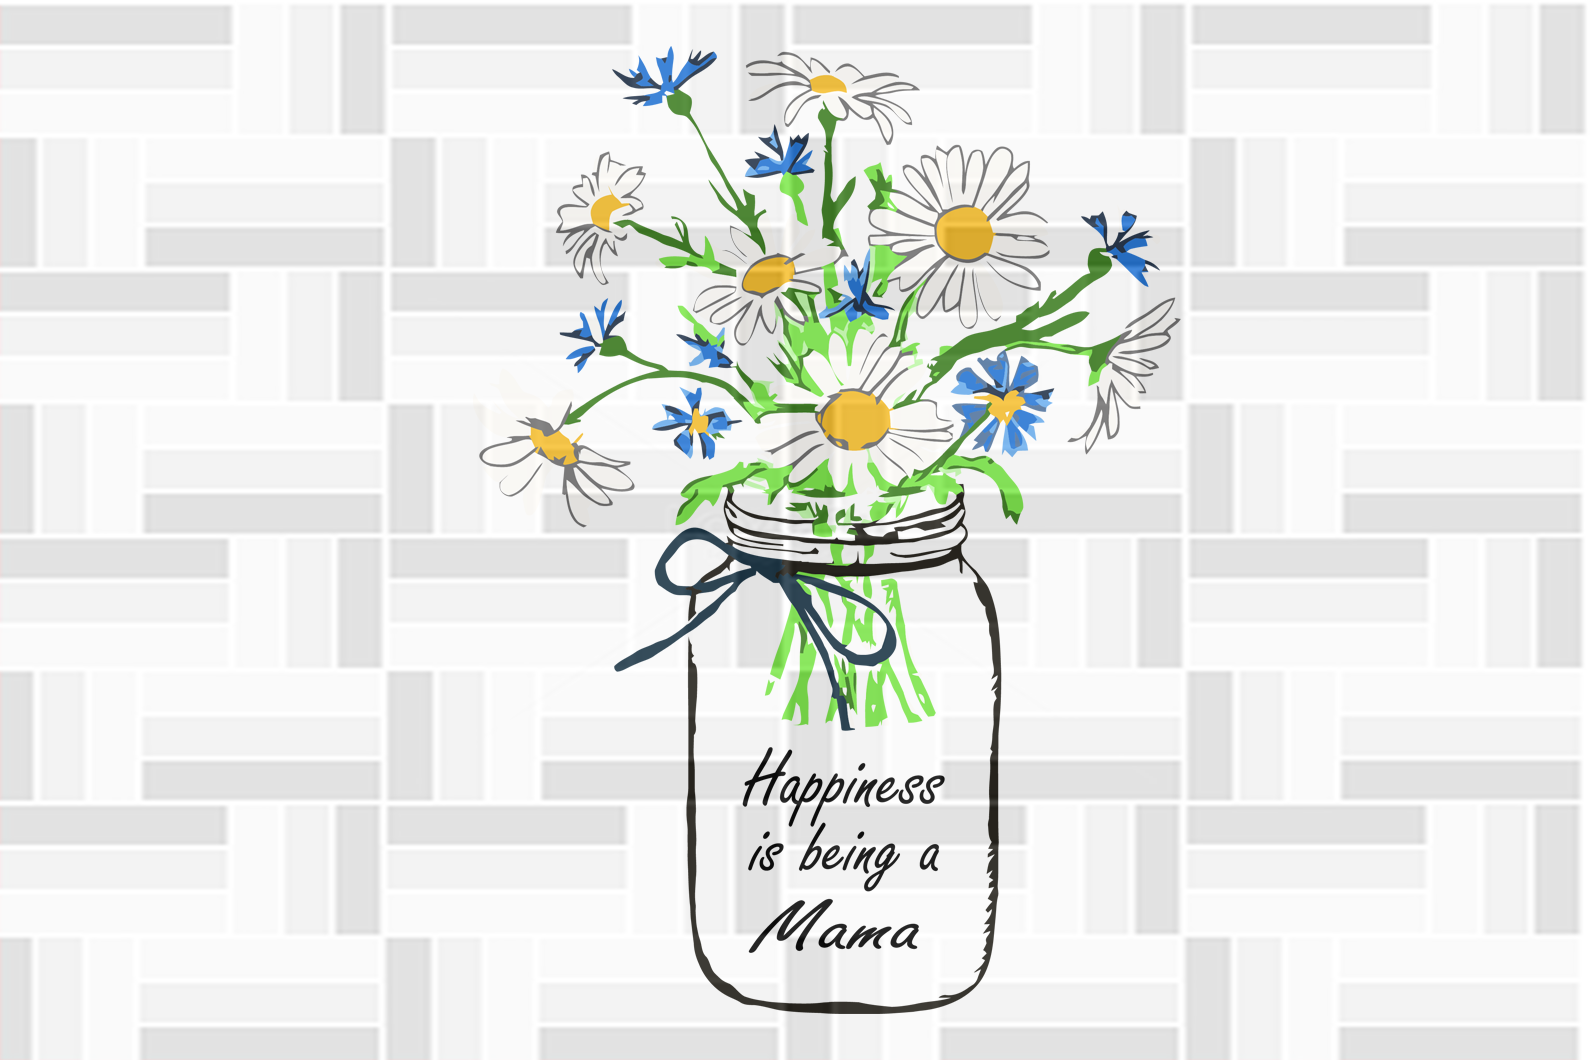 Happiness is being a mama, flower svg, mama svg, mama gift, family svg, family shirt,family gift,trending svg, Files For Silhouette, Files For Cricut, SVG, DXF, EPS, PNG, Instant Download